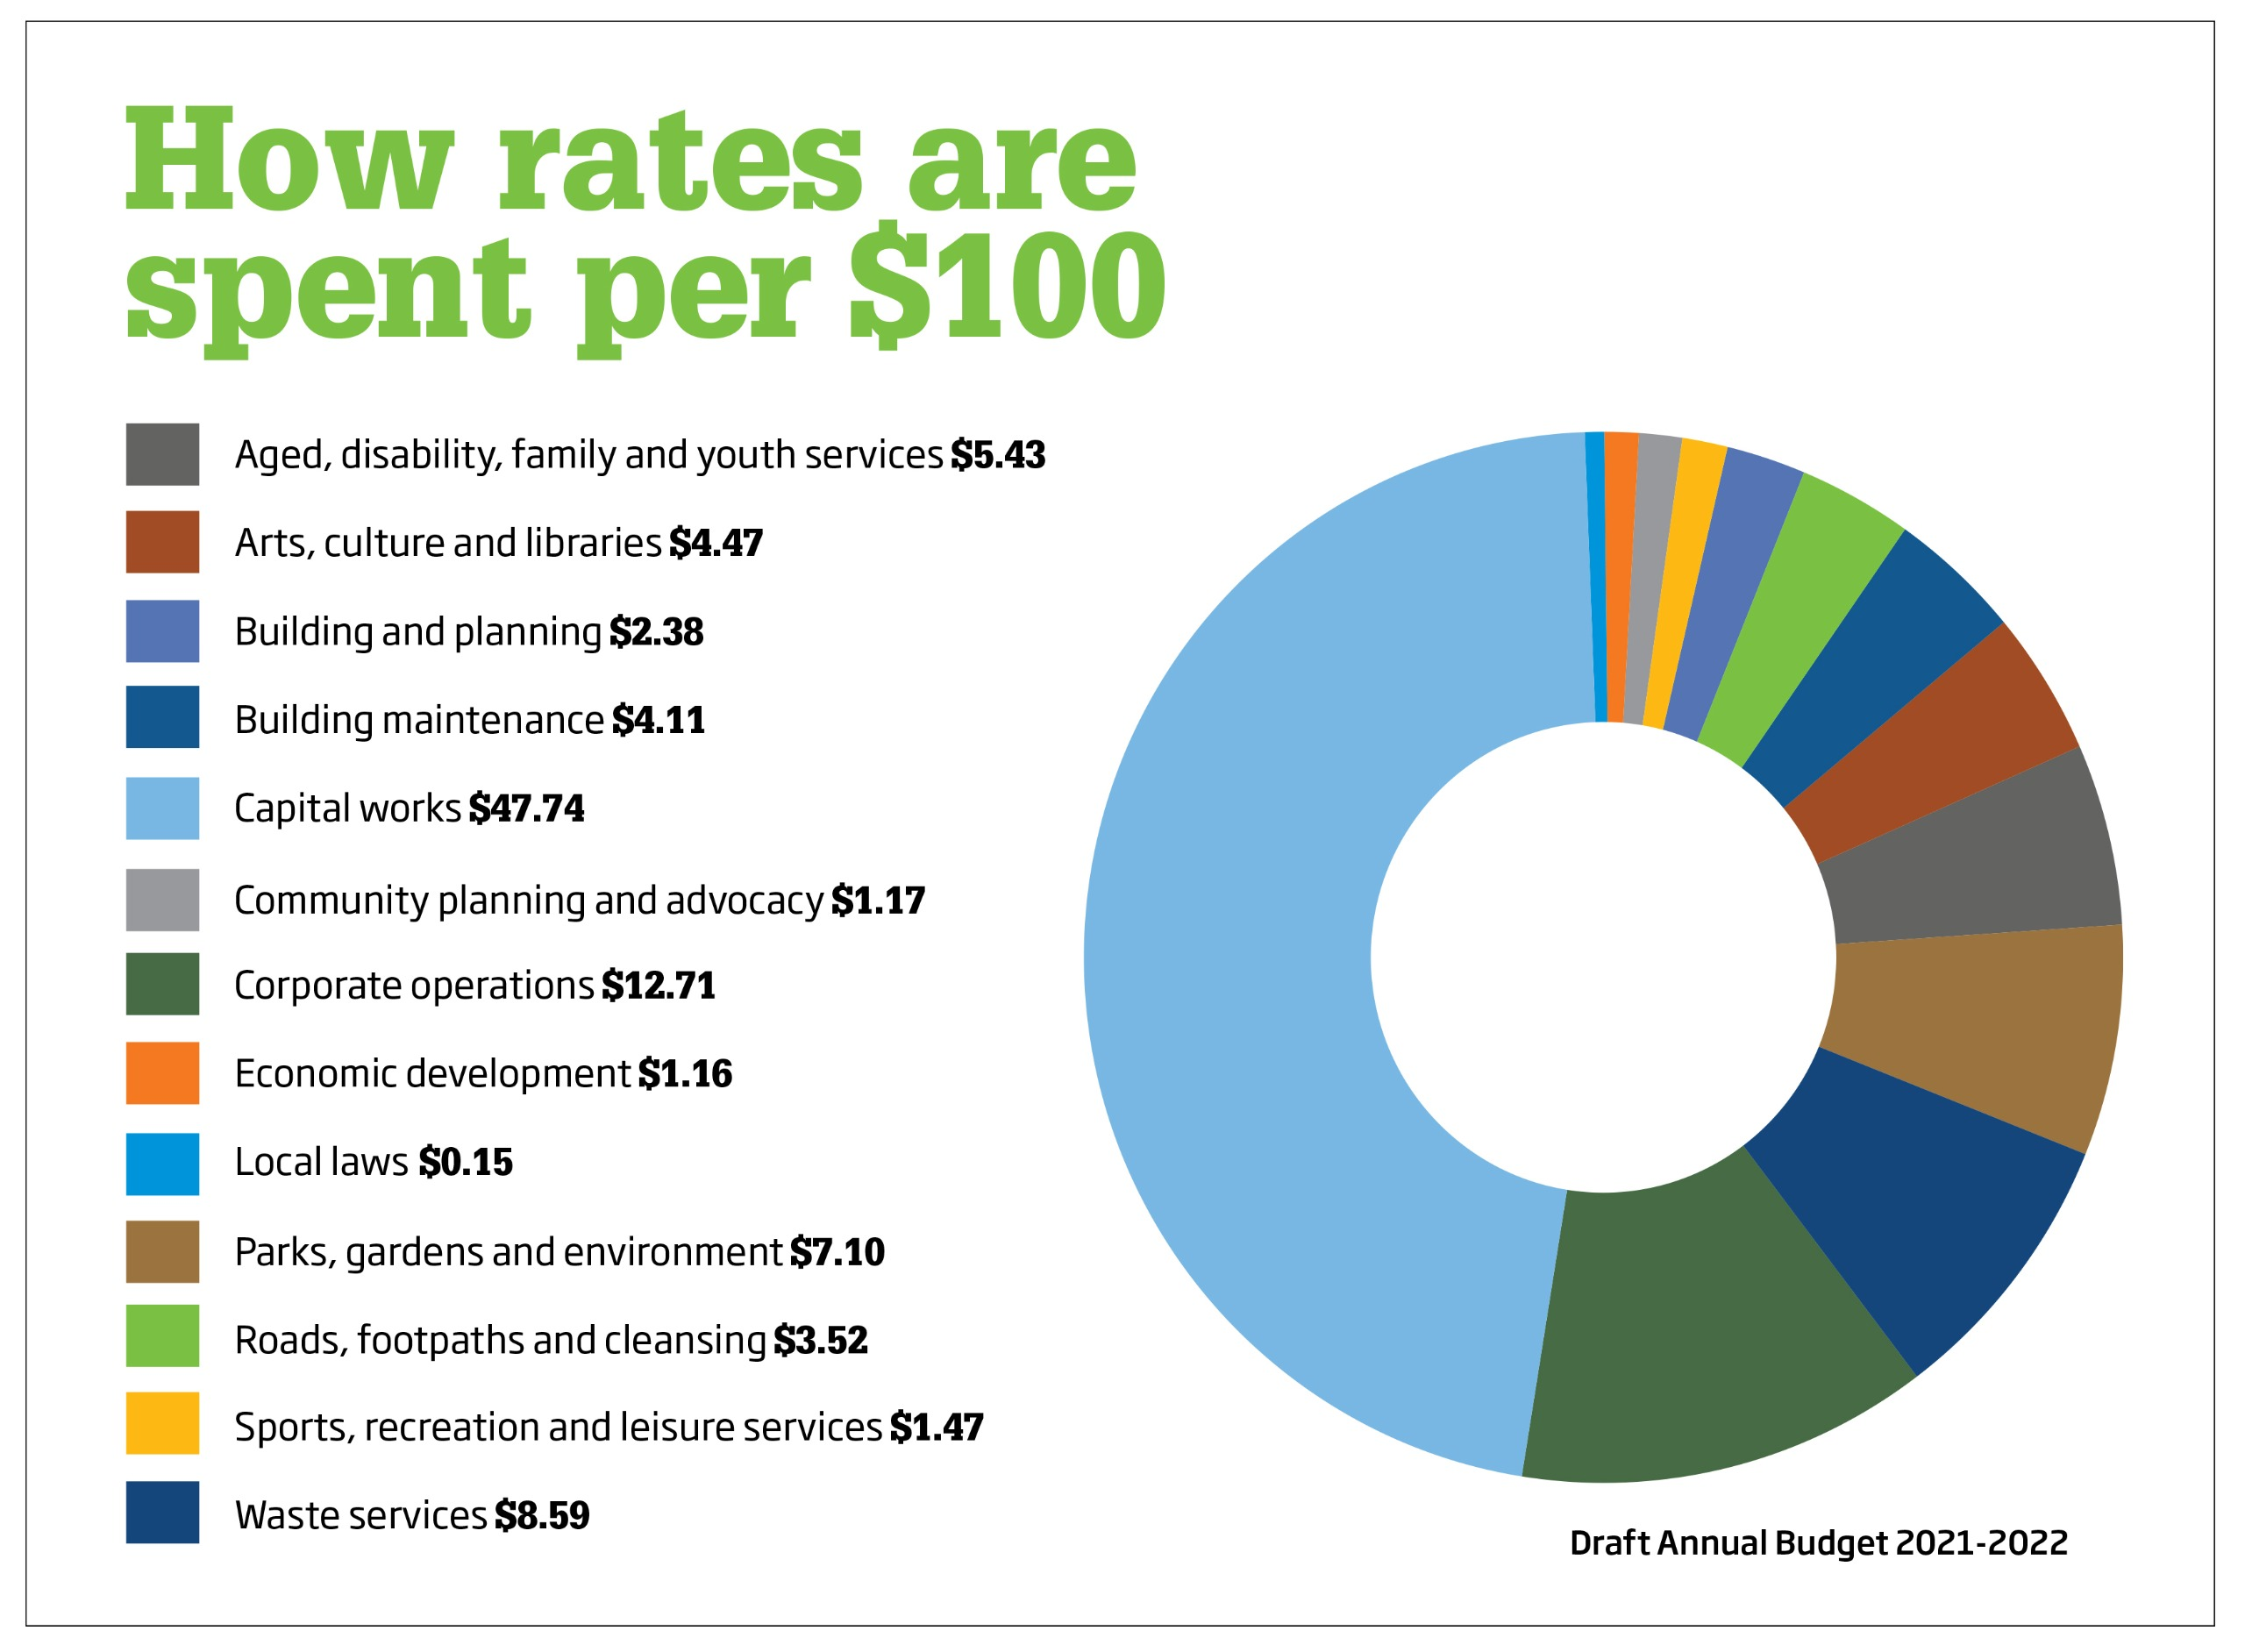 chart of how rates are spent